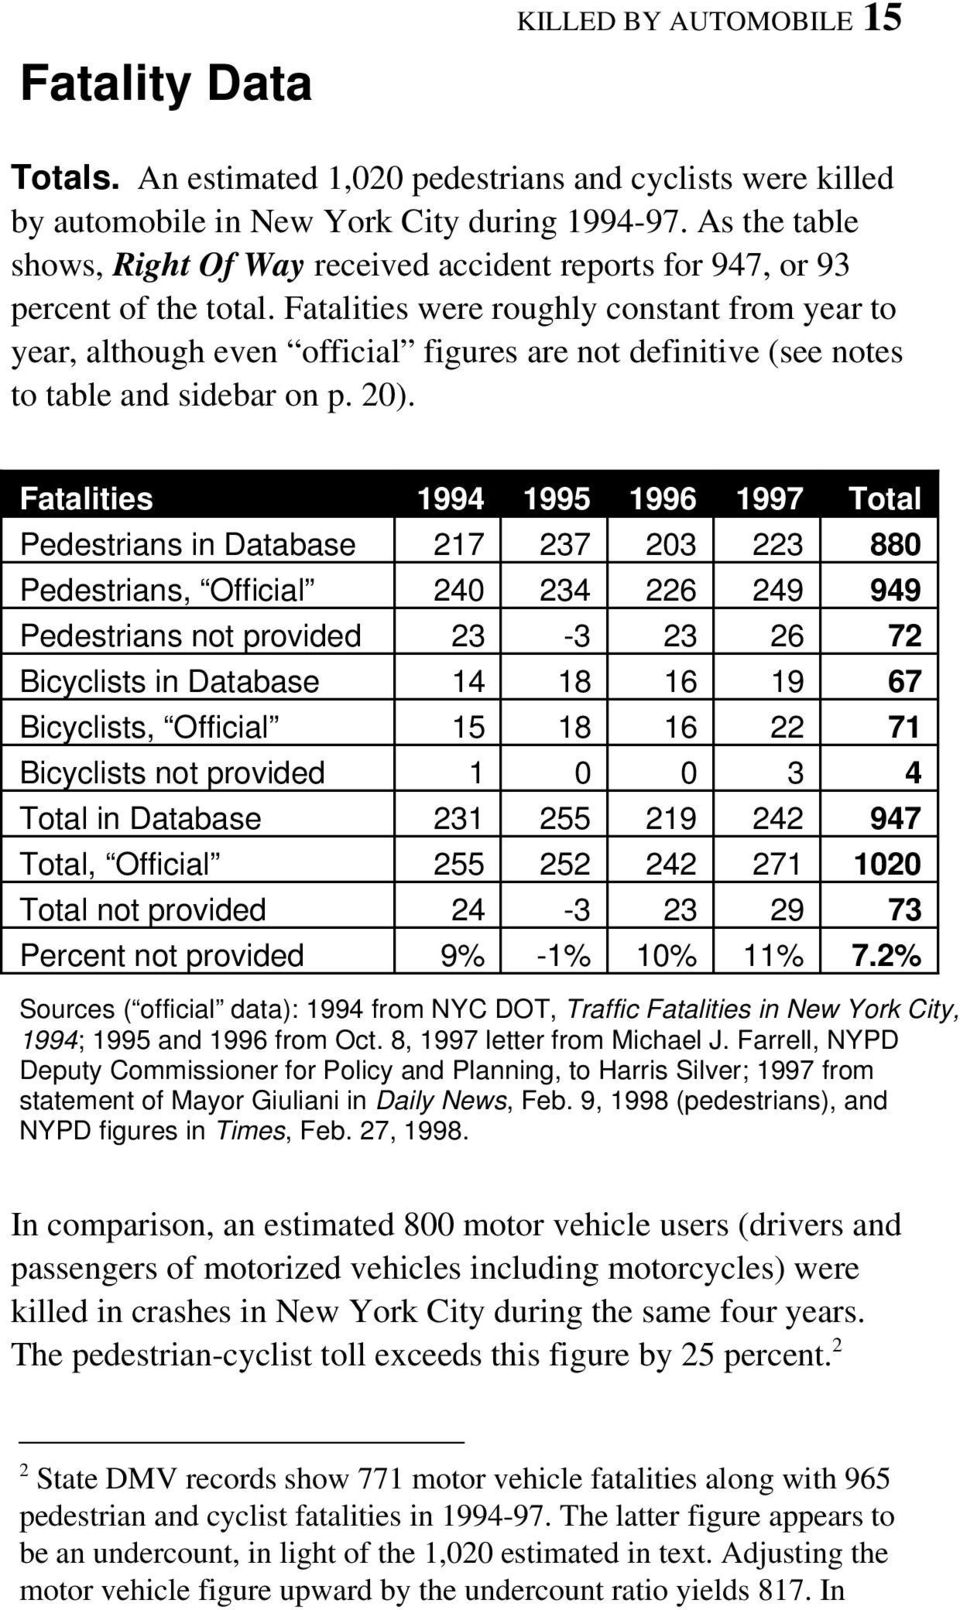 Fatalities were roughly constant from year to year, although even official figures are not definitive (see notes to table and sidebar on p. 20).